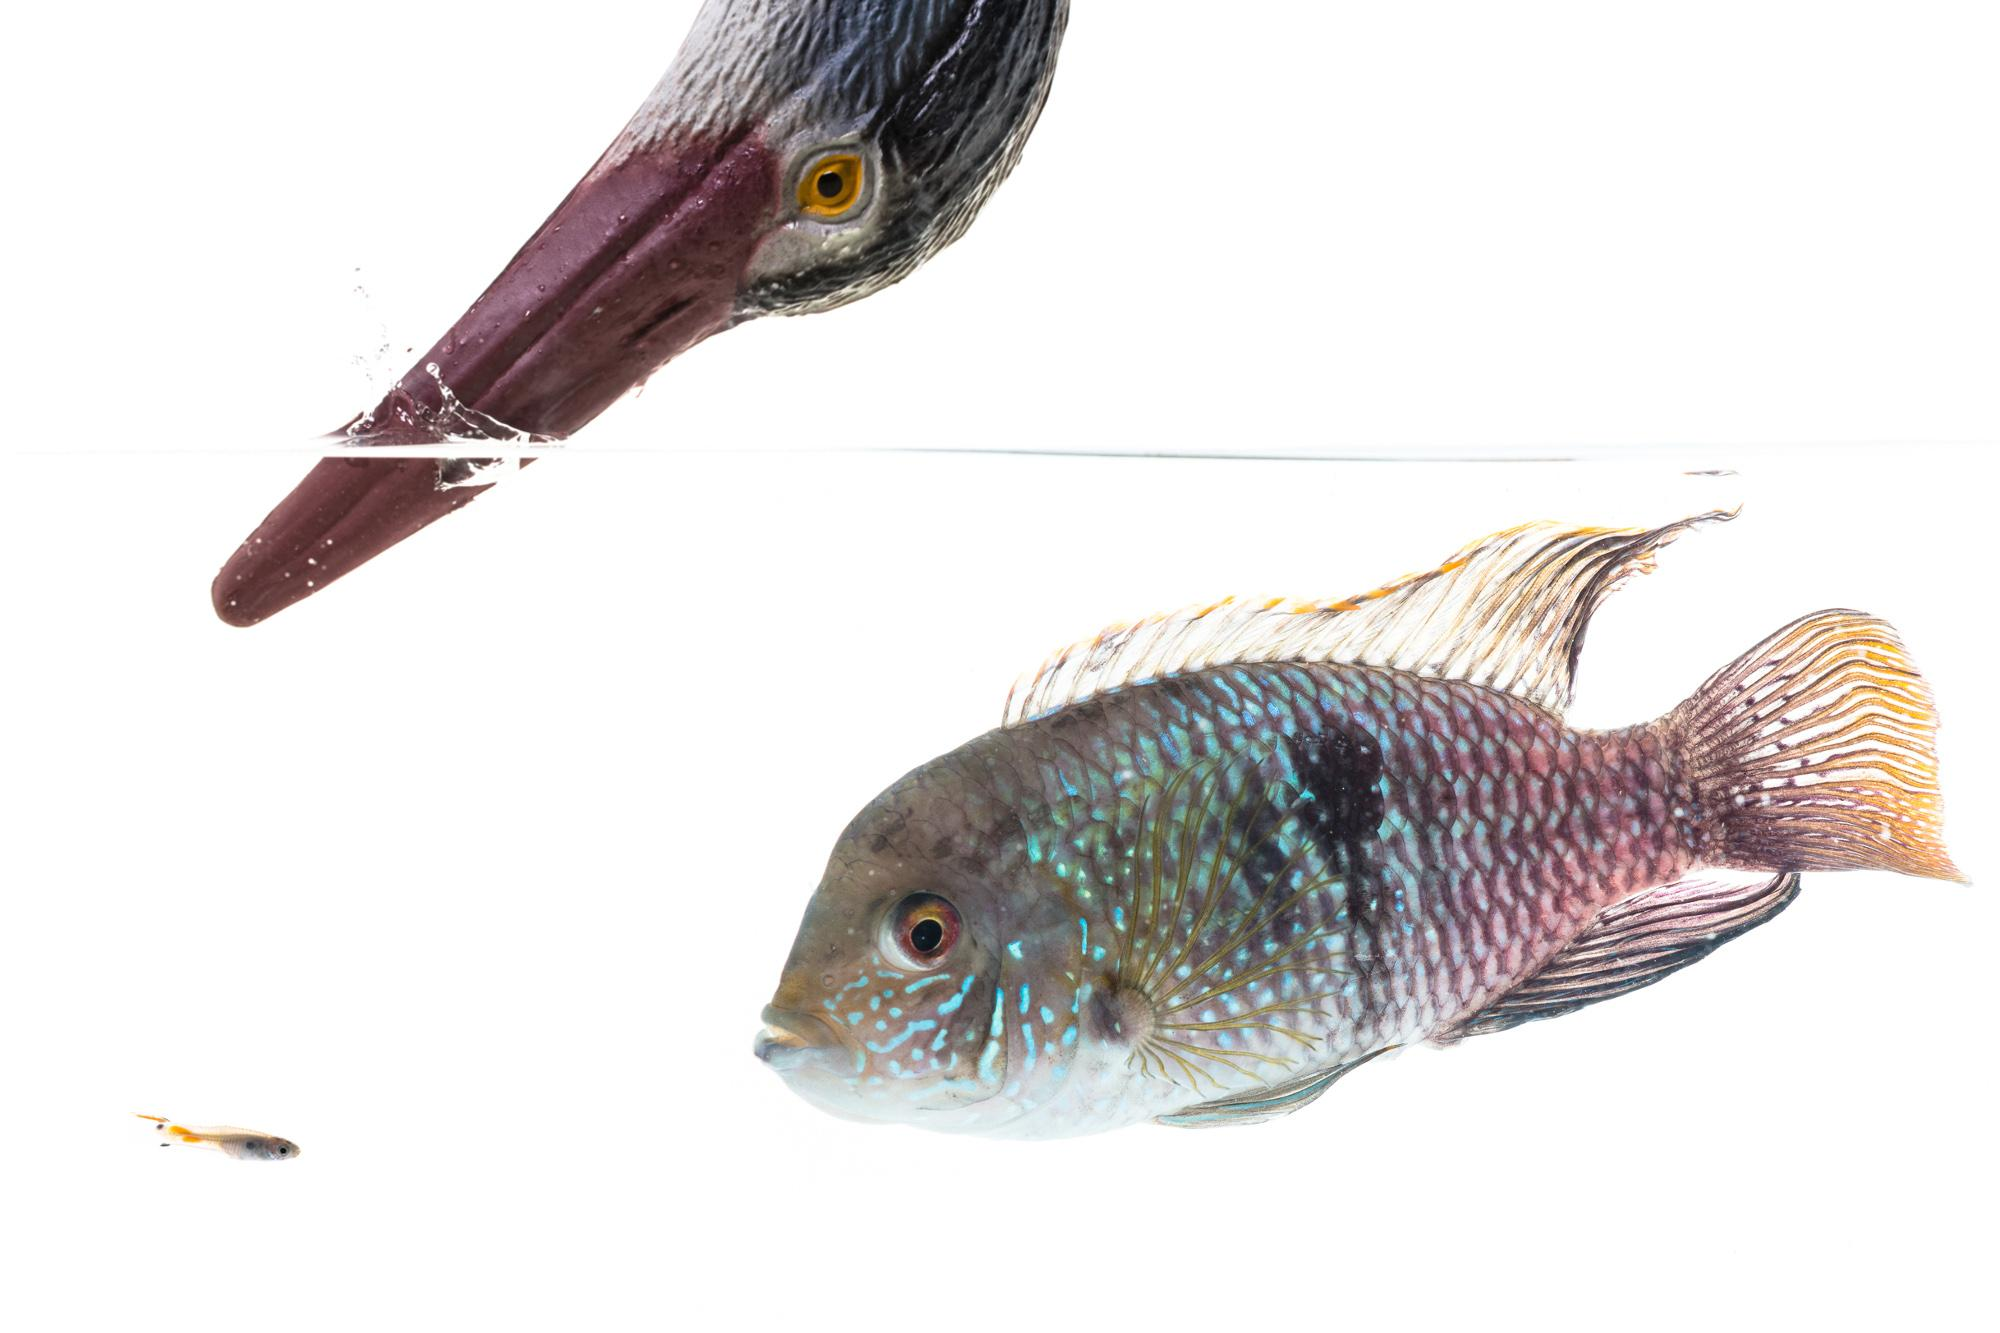 Scientists find fish actually have complex personalities